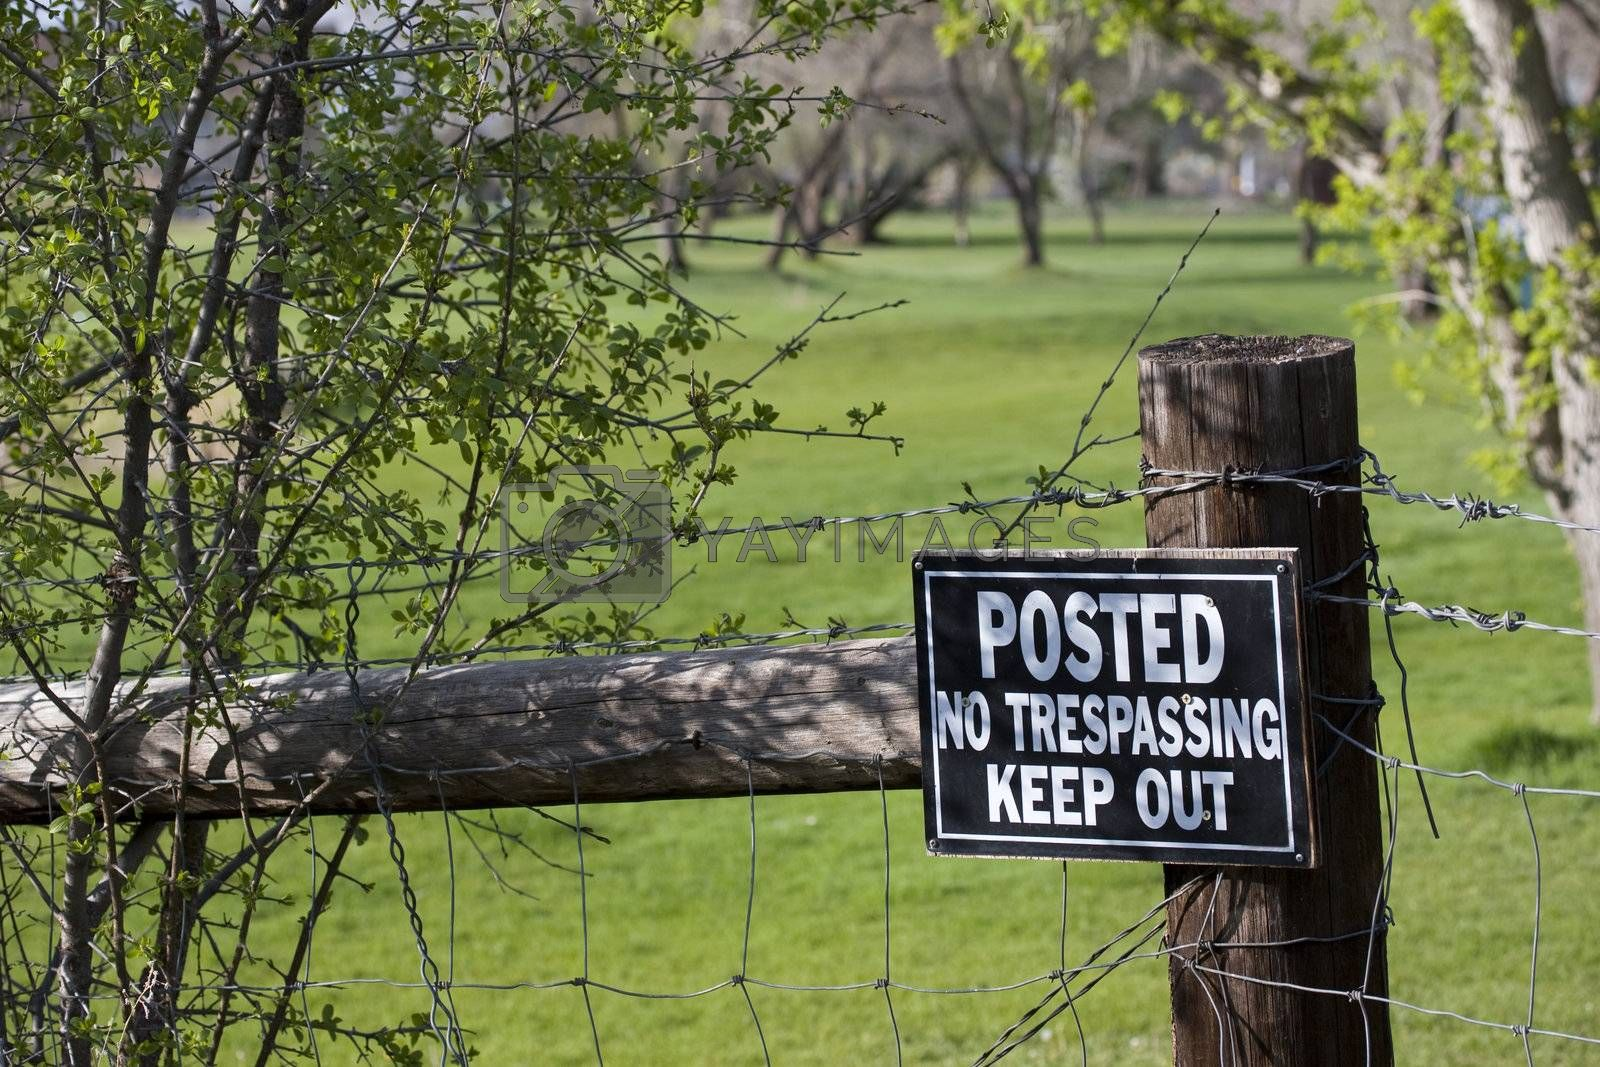 no trespassing - keep out sign on a fence surrounding green meadow or golf course